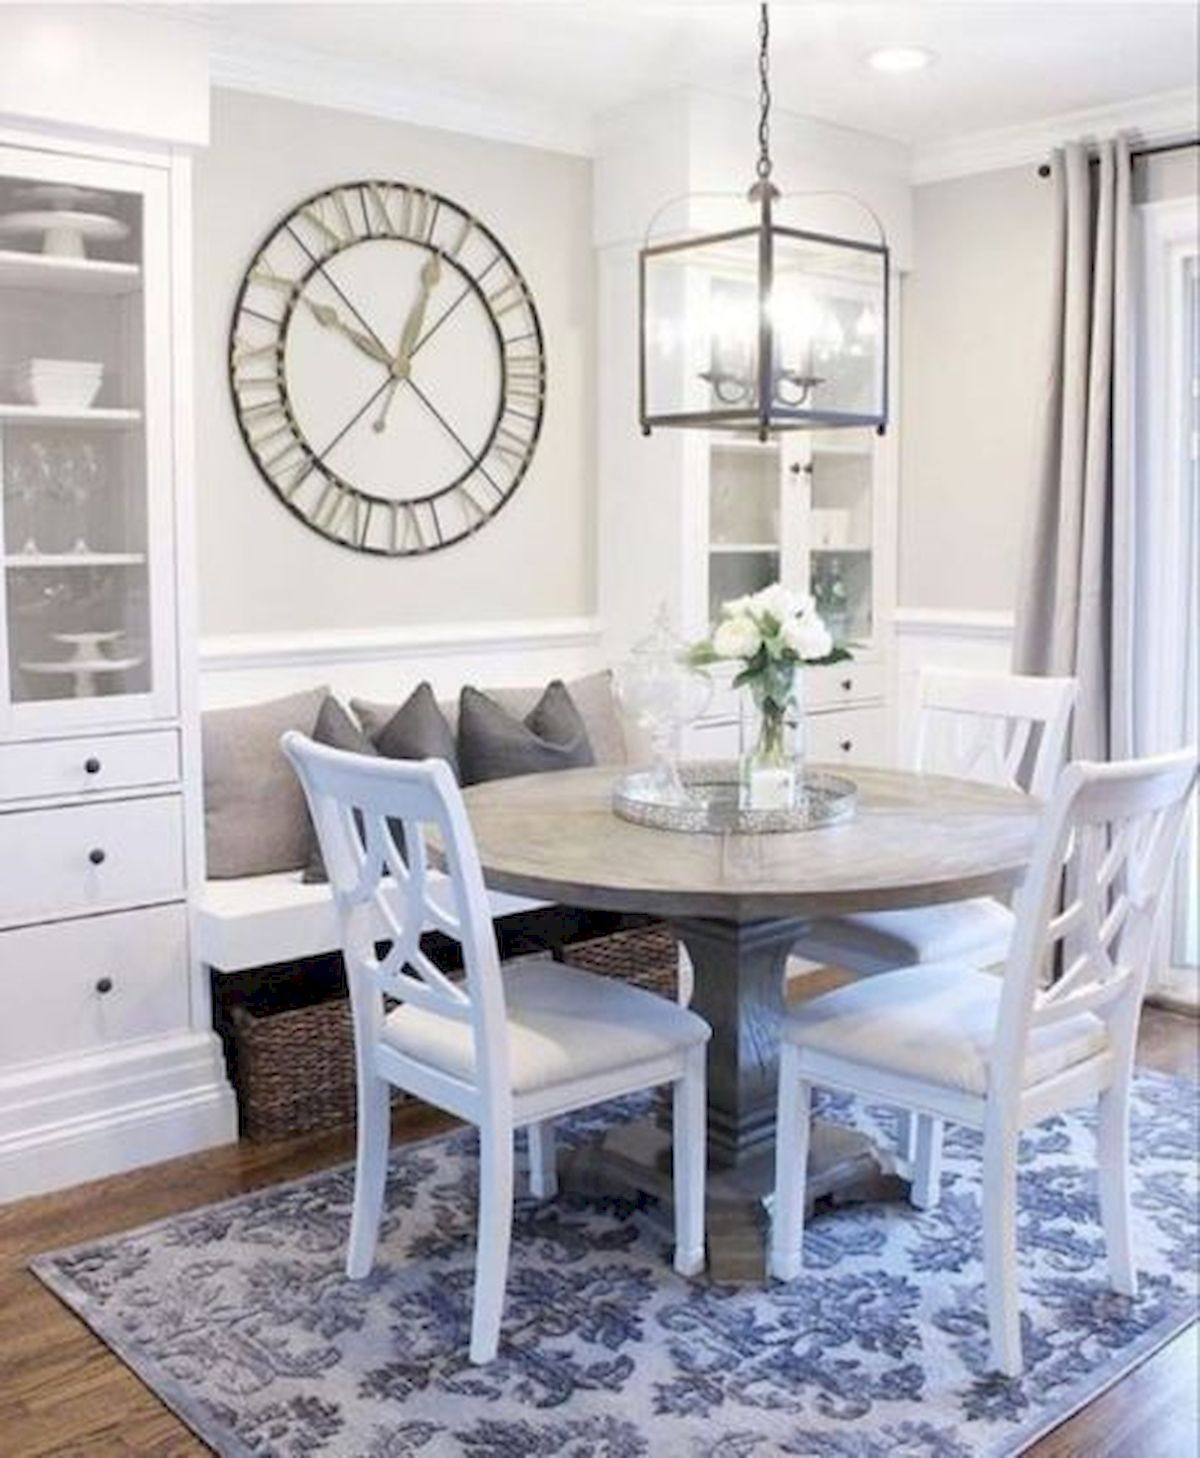 52 Beautiful Small Dining Room Ideas On A Budget Shairoom Com Dining Room Small Dining Room Budget Farmhouse Dining Rooms Decor